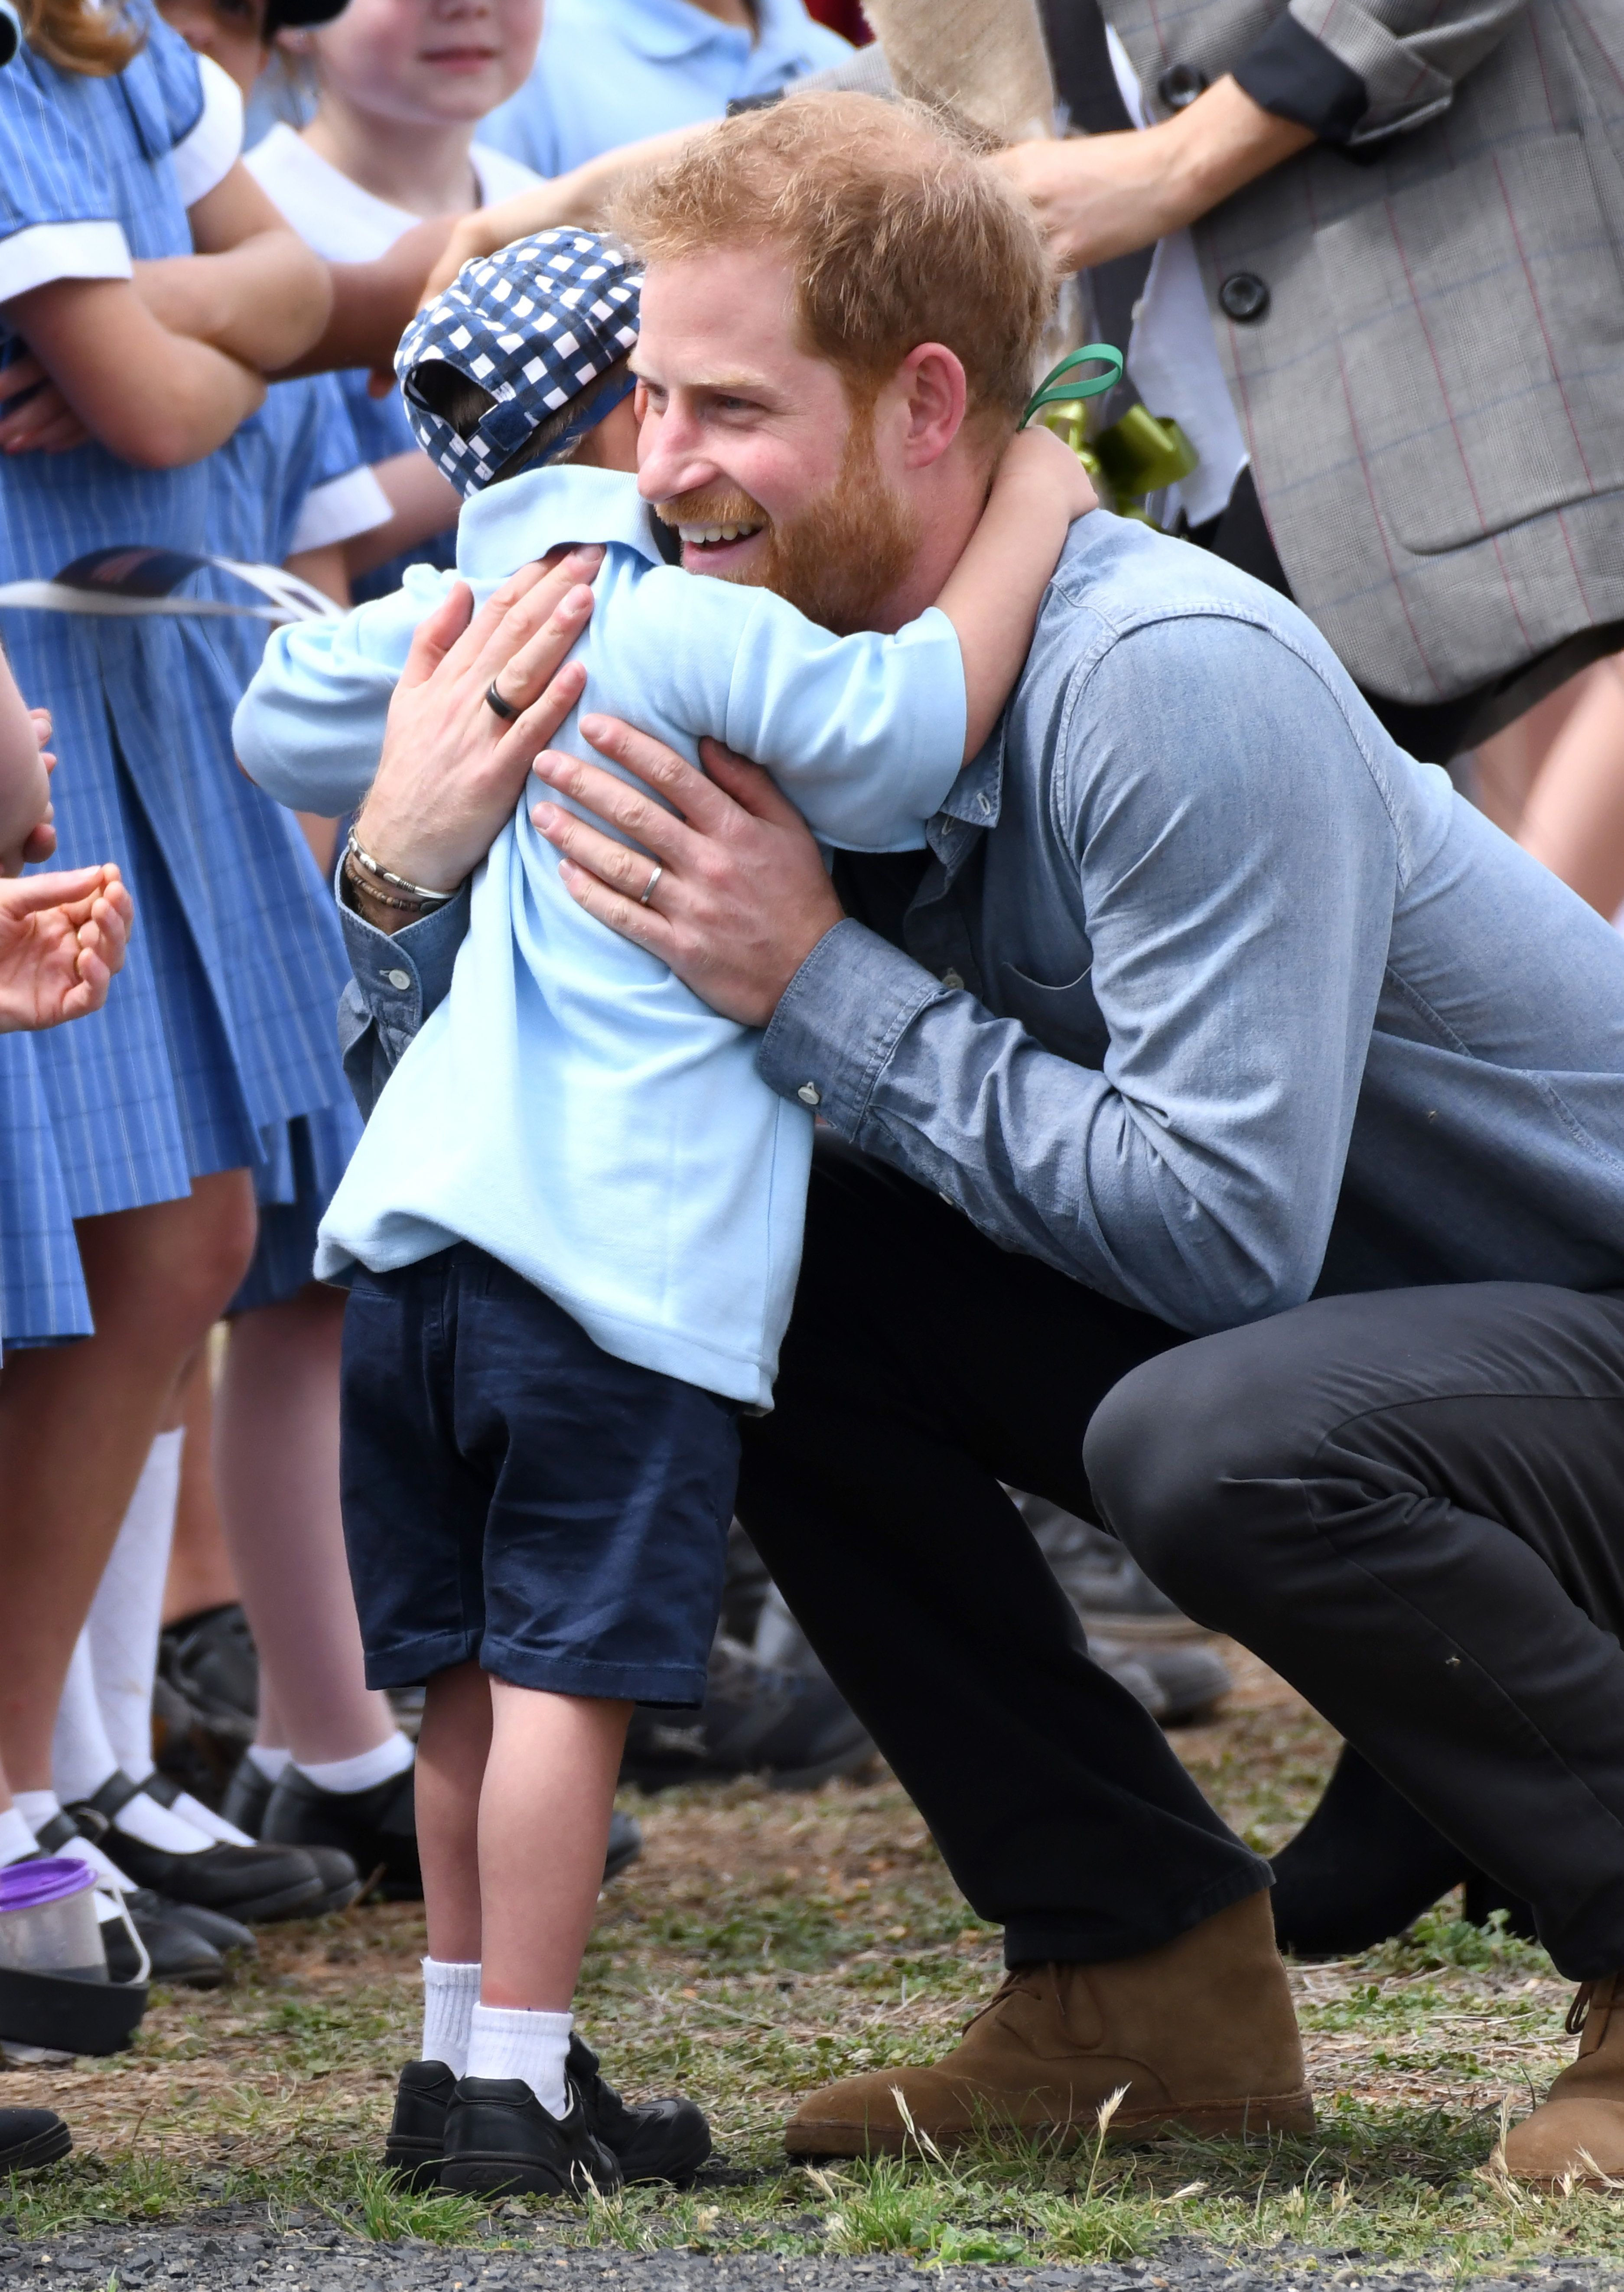 Prince Harry And Meghan Get Enthusiastic Hugs From 5-Year-Old Boy And Our Hearts Are